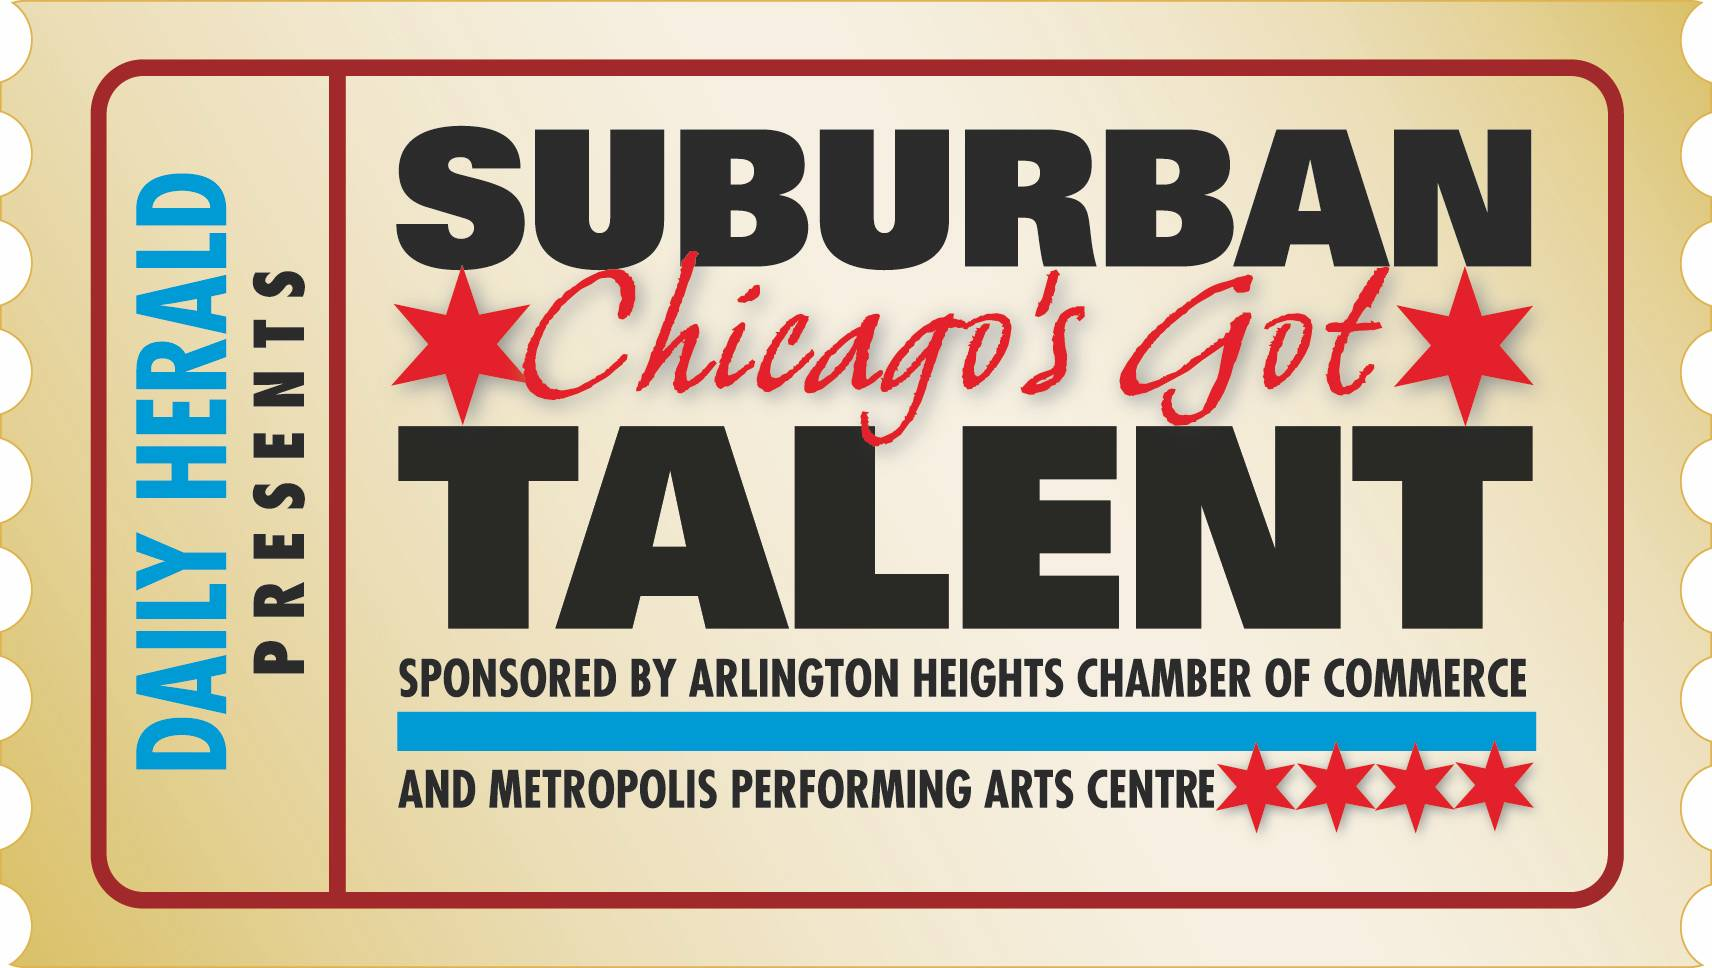 Suburban Chicago's Got Talent